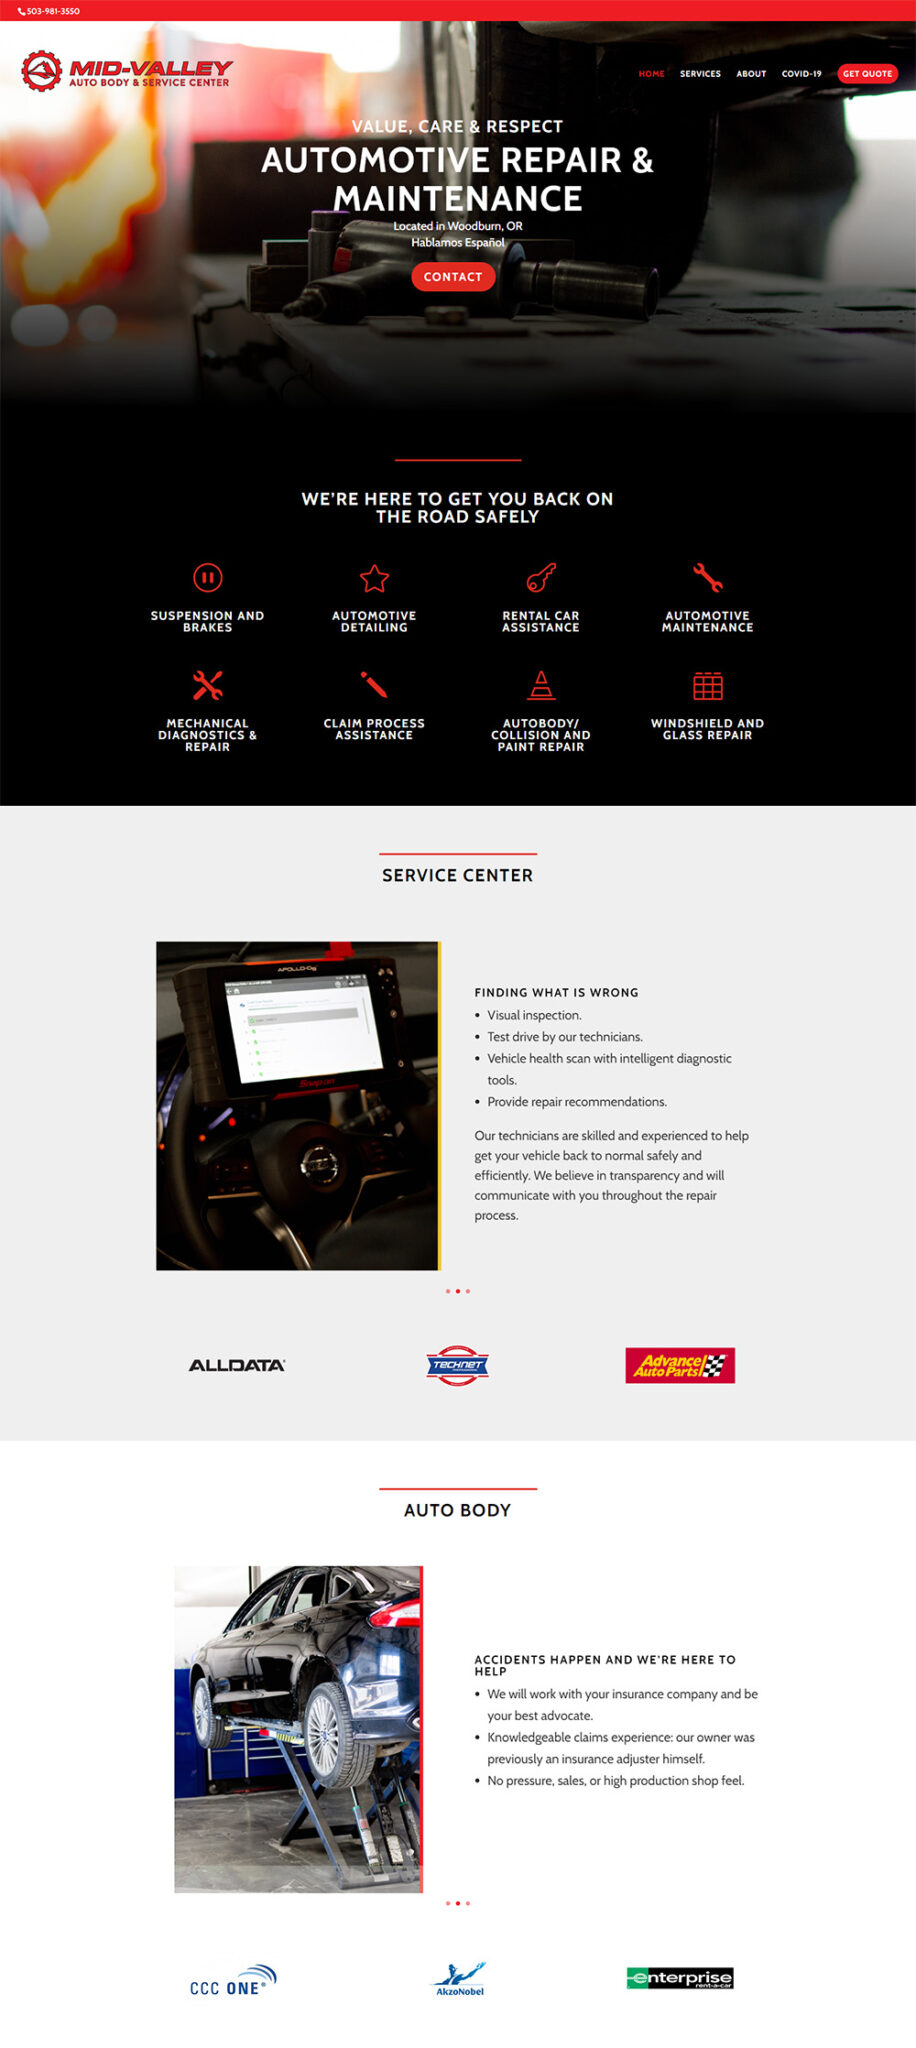 First half of the Mid-Valley Auto Body & Service Center Home page After Redesign